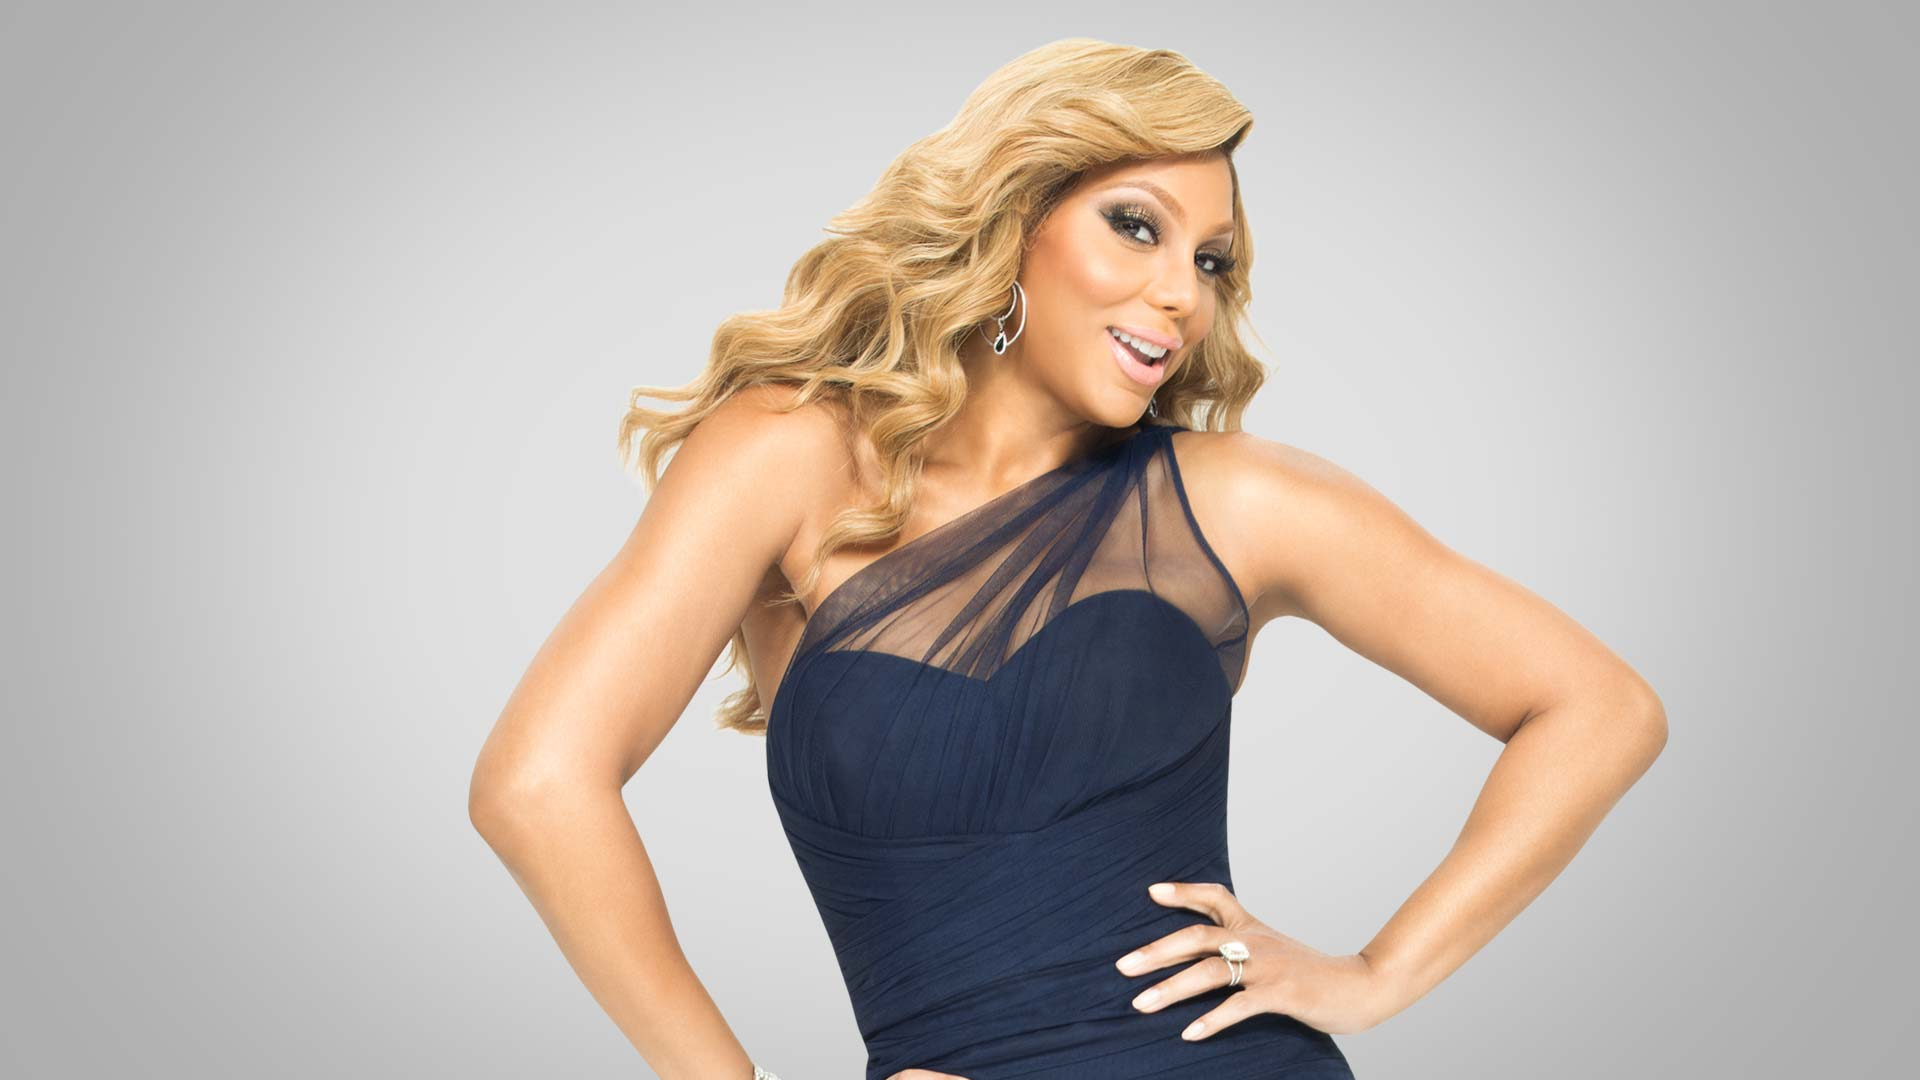 Tamar Braxton Talks About How She Feels About Having To Live With More Celebs In A House - She Says She Never Had Room Mates Before - Watch The Video